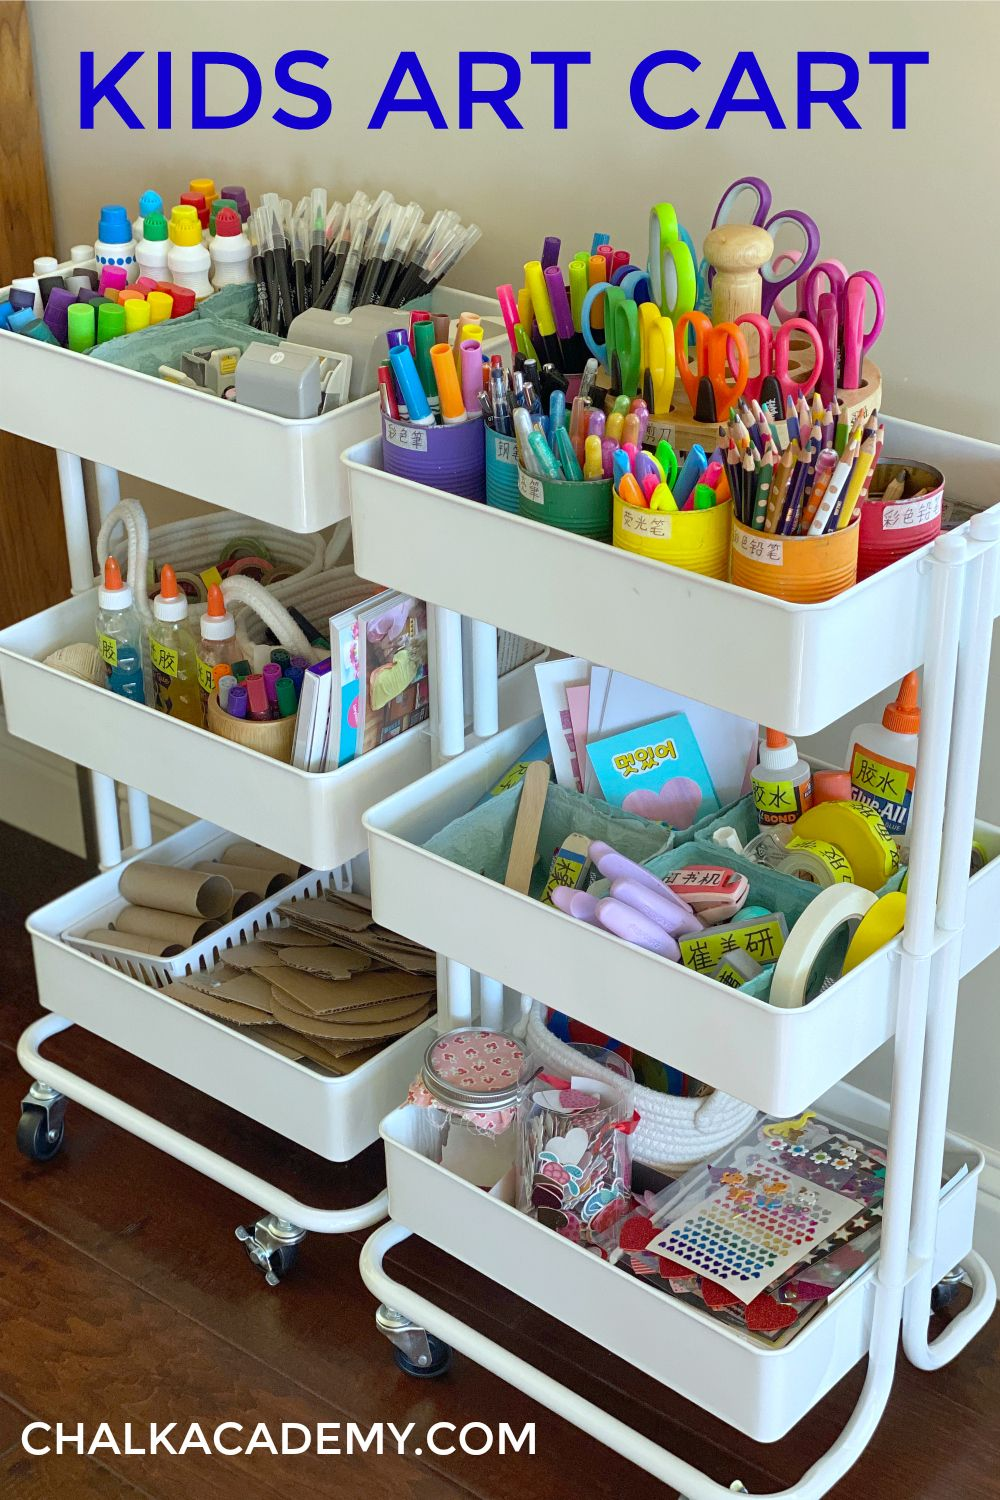 Photo of Kids Art Cart, Storage System, and Organization Tips